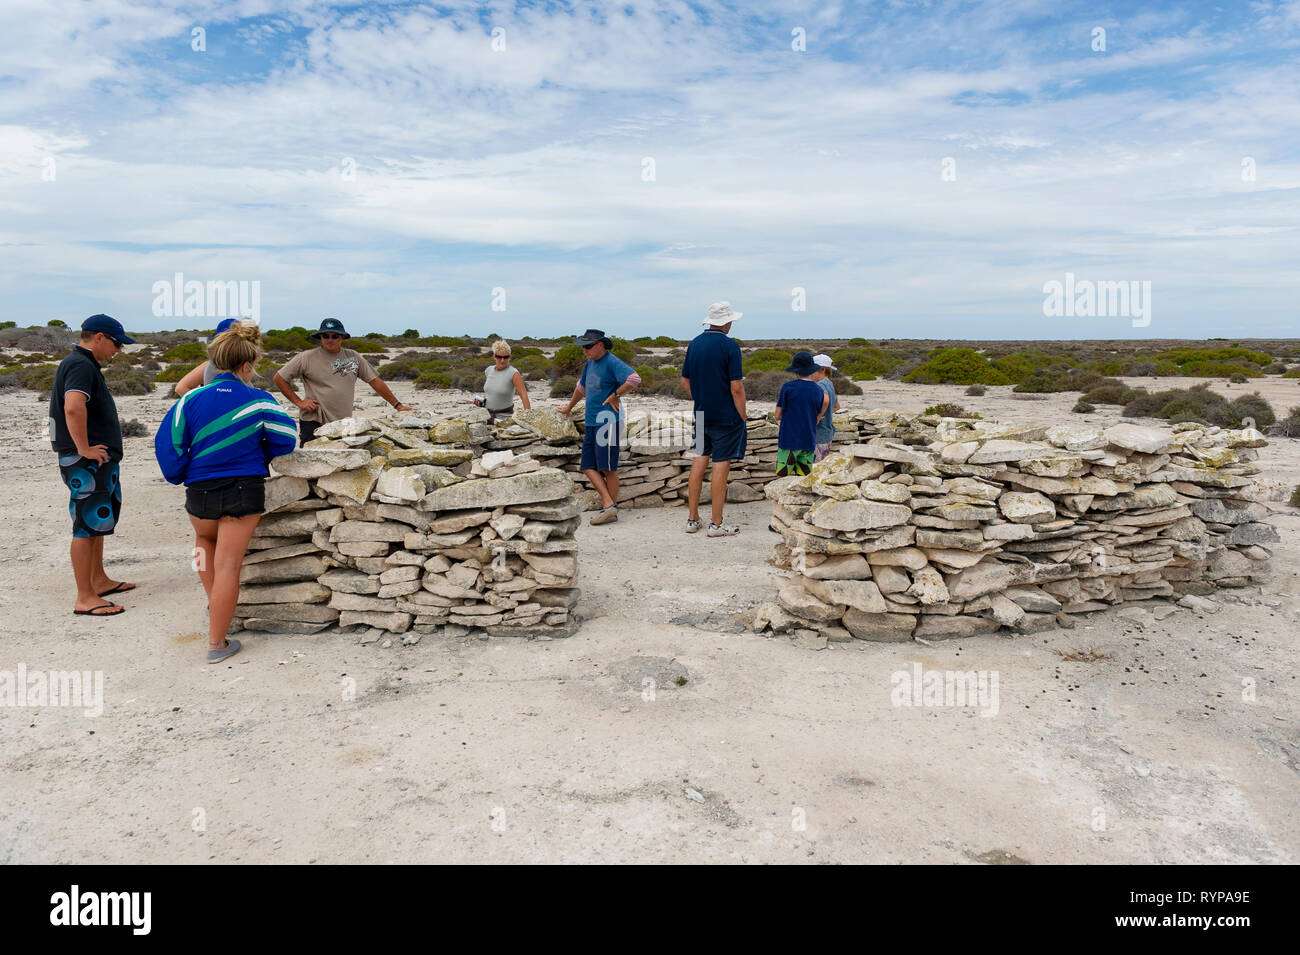 The inland fort on West Wallabi island was constructed by Dutch soldier Wiebbe Hayes and other survivors of the Batavia shipwreck in 1629, it is the o - Stock Image